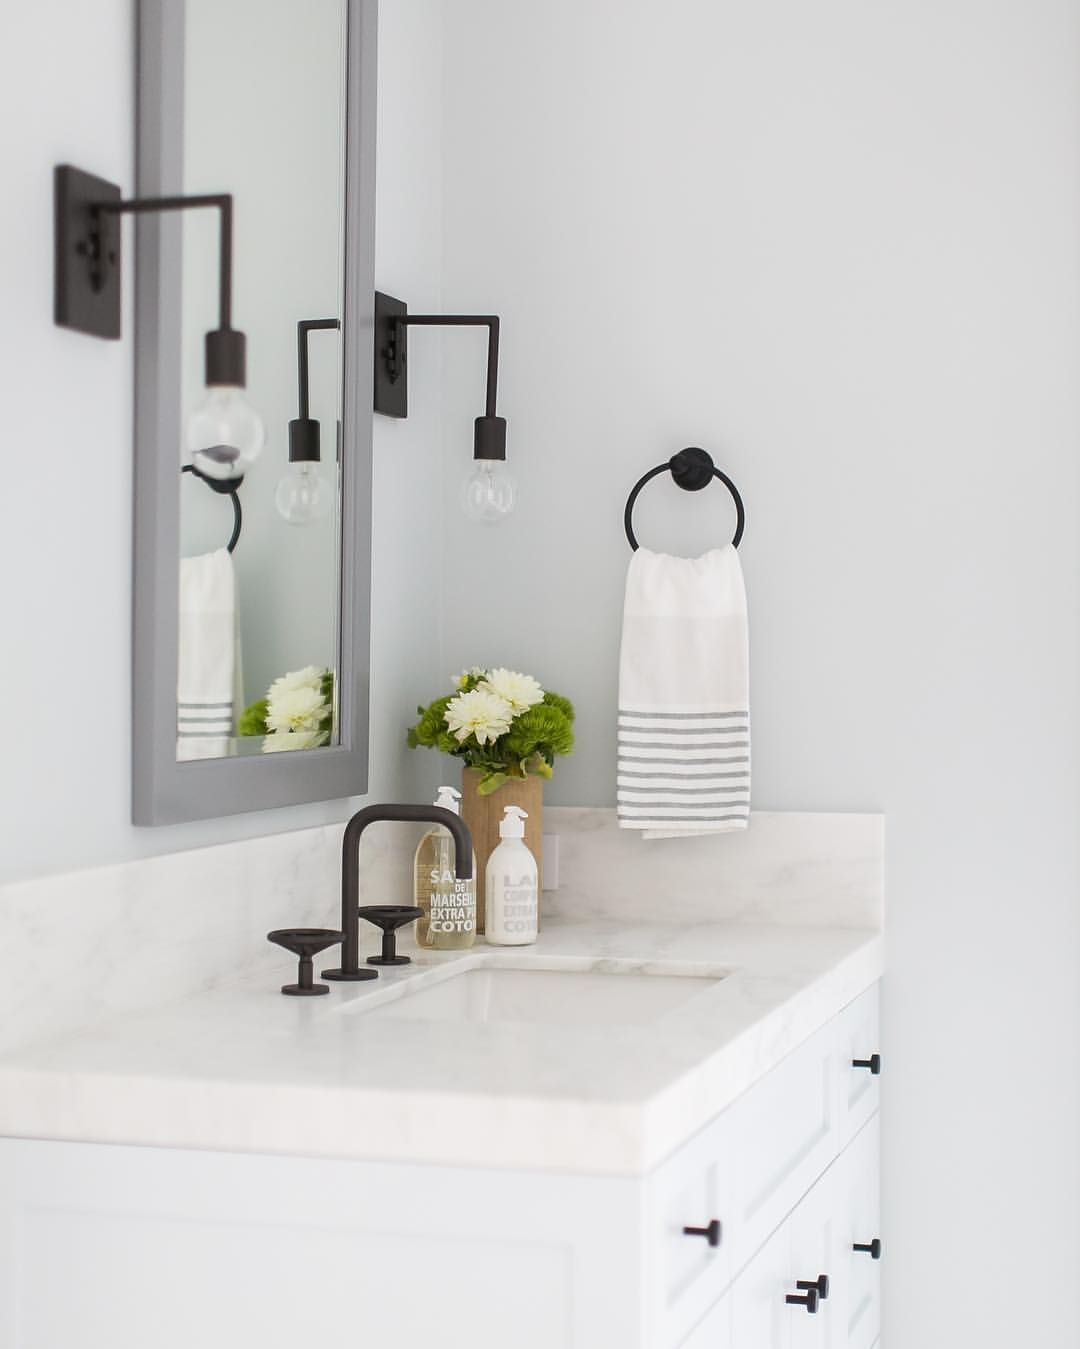 Black Bathroom Details We Sconces Hardware Faucet All In A Flat Black Finish And A Bo Guest Bathroom Small Wall Sconces Bedroom Bathroom Wall Sconces